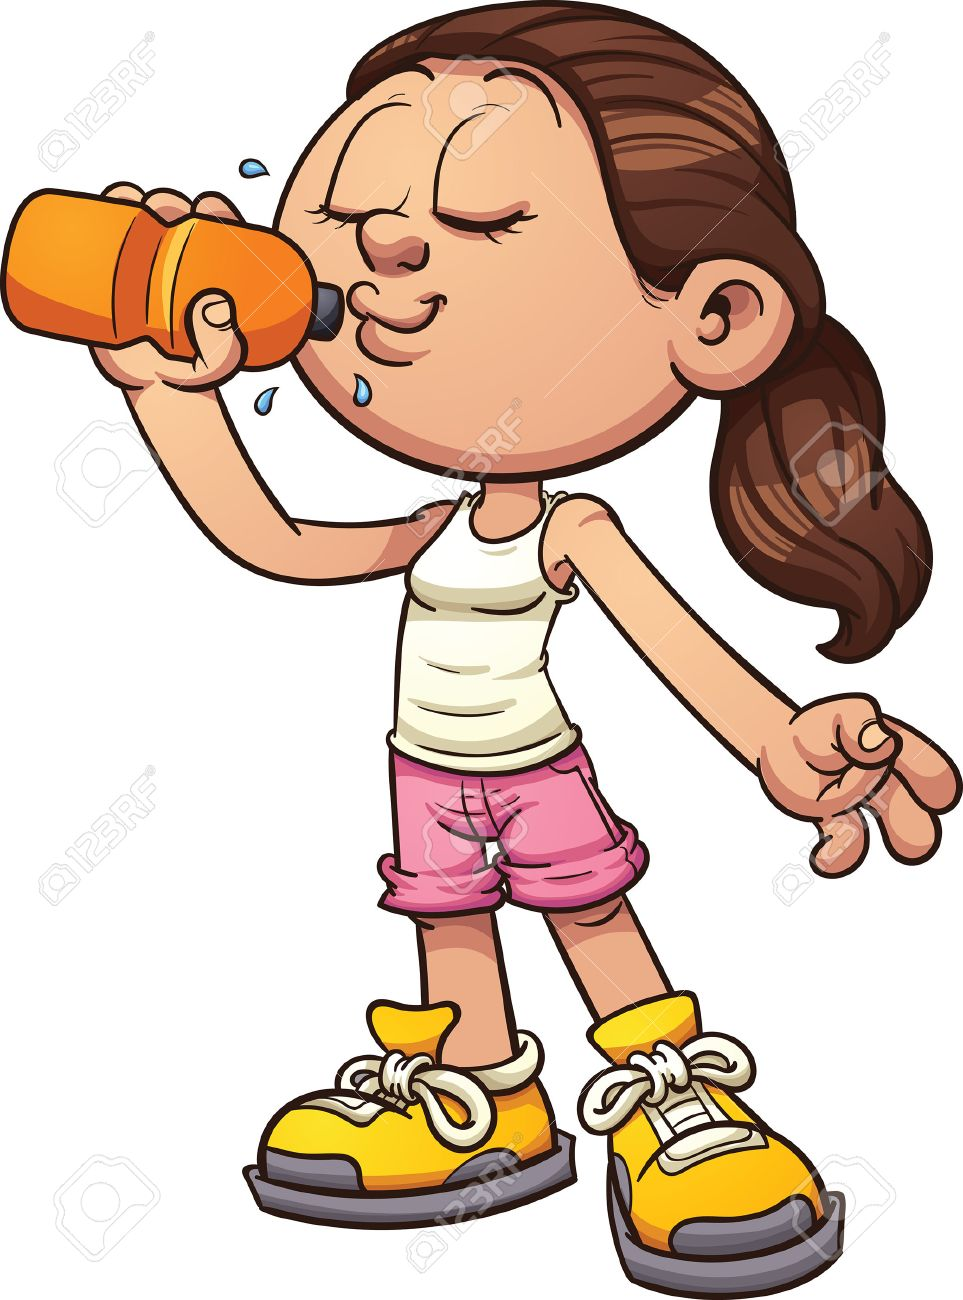 Woman drinking soda clipart svg library stock Women Drinking Cliparts - Making-The-Web.com svg library stock